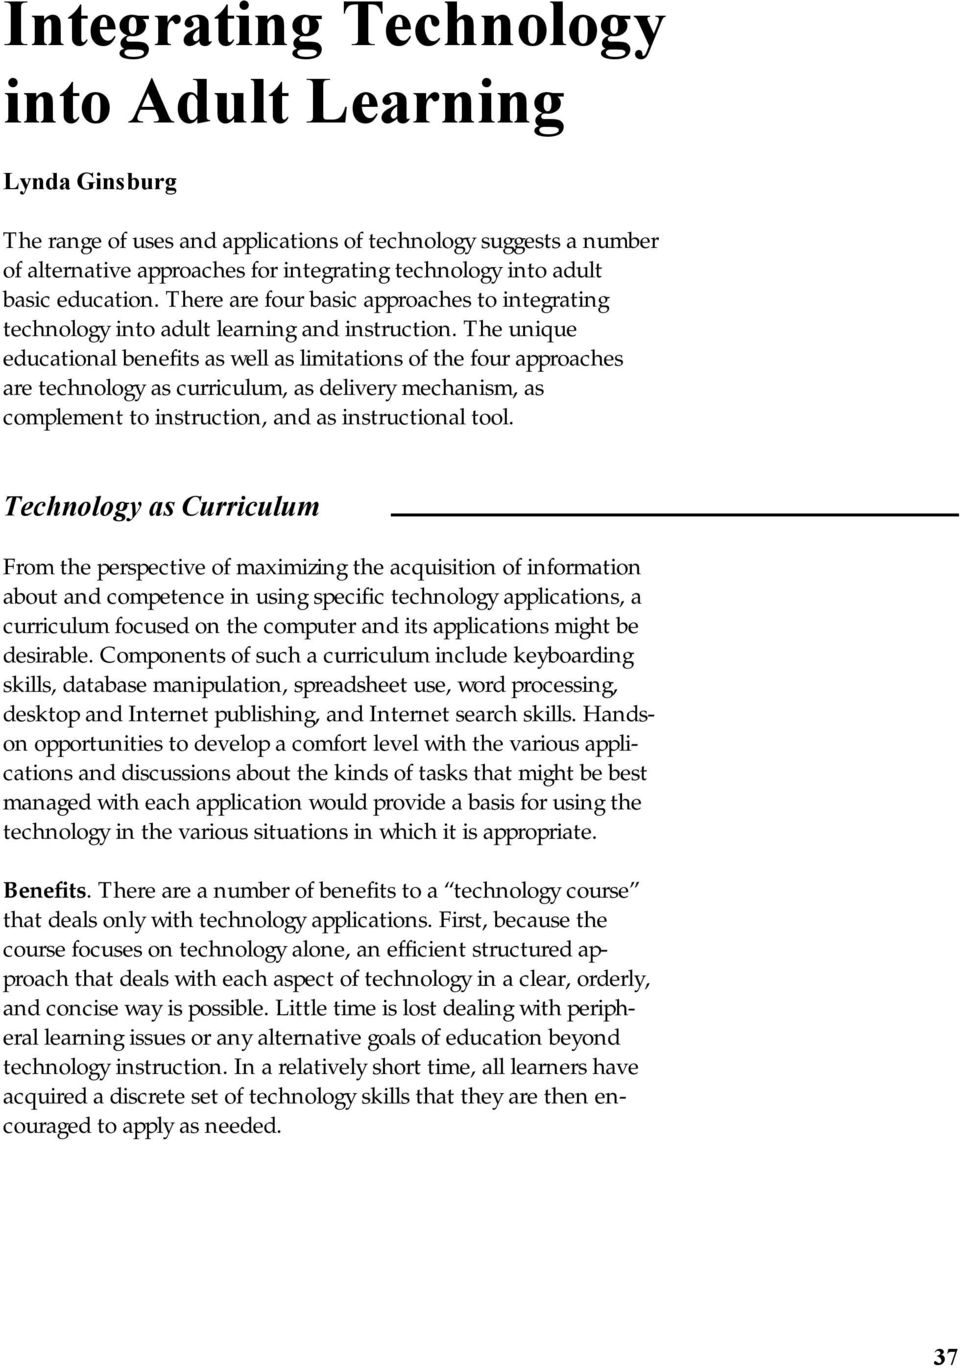 The unique educational benefits as well as limitations of the four approaches are technology as curriculum, as delivery mechanism, as complement to instruction, and as instructional tool.